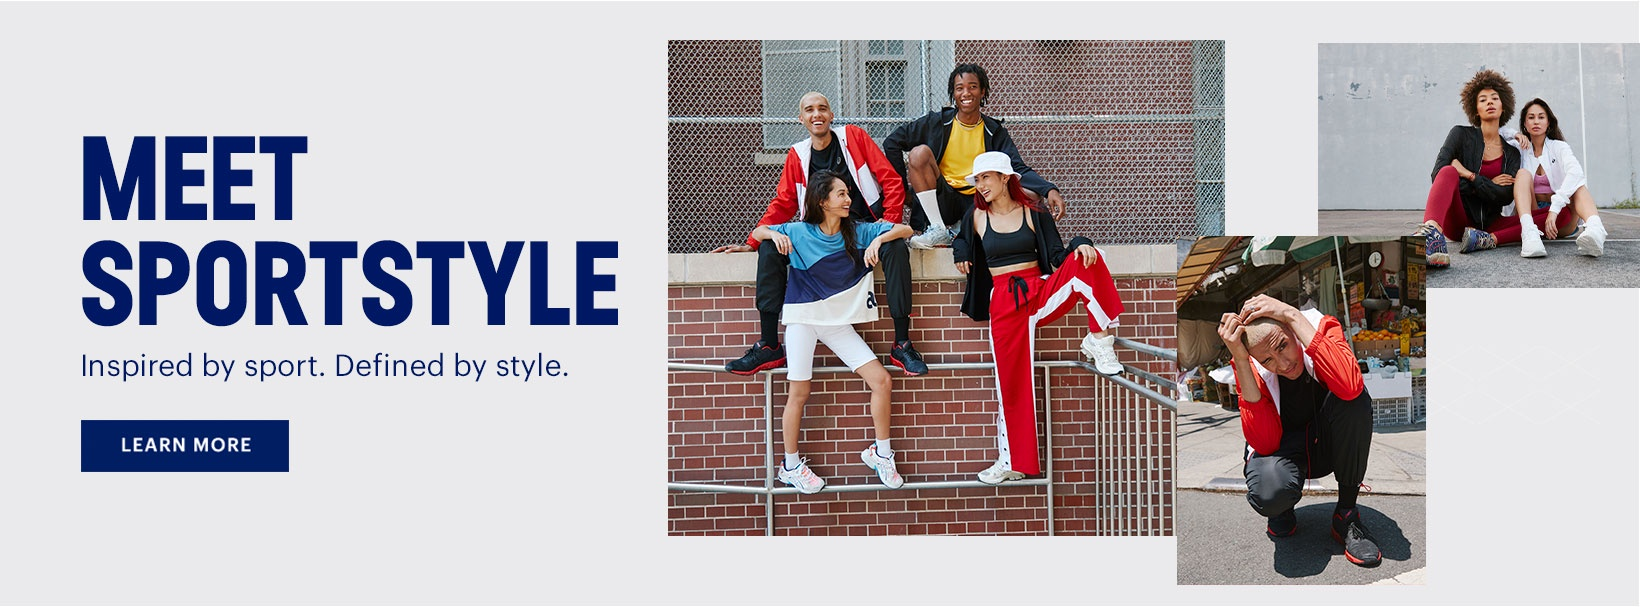 Sportstyle Banner Home View